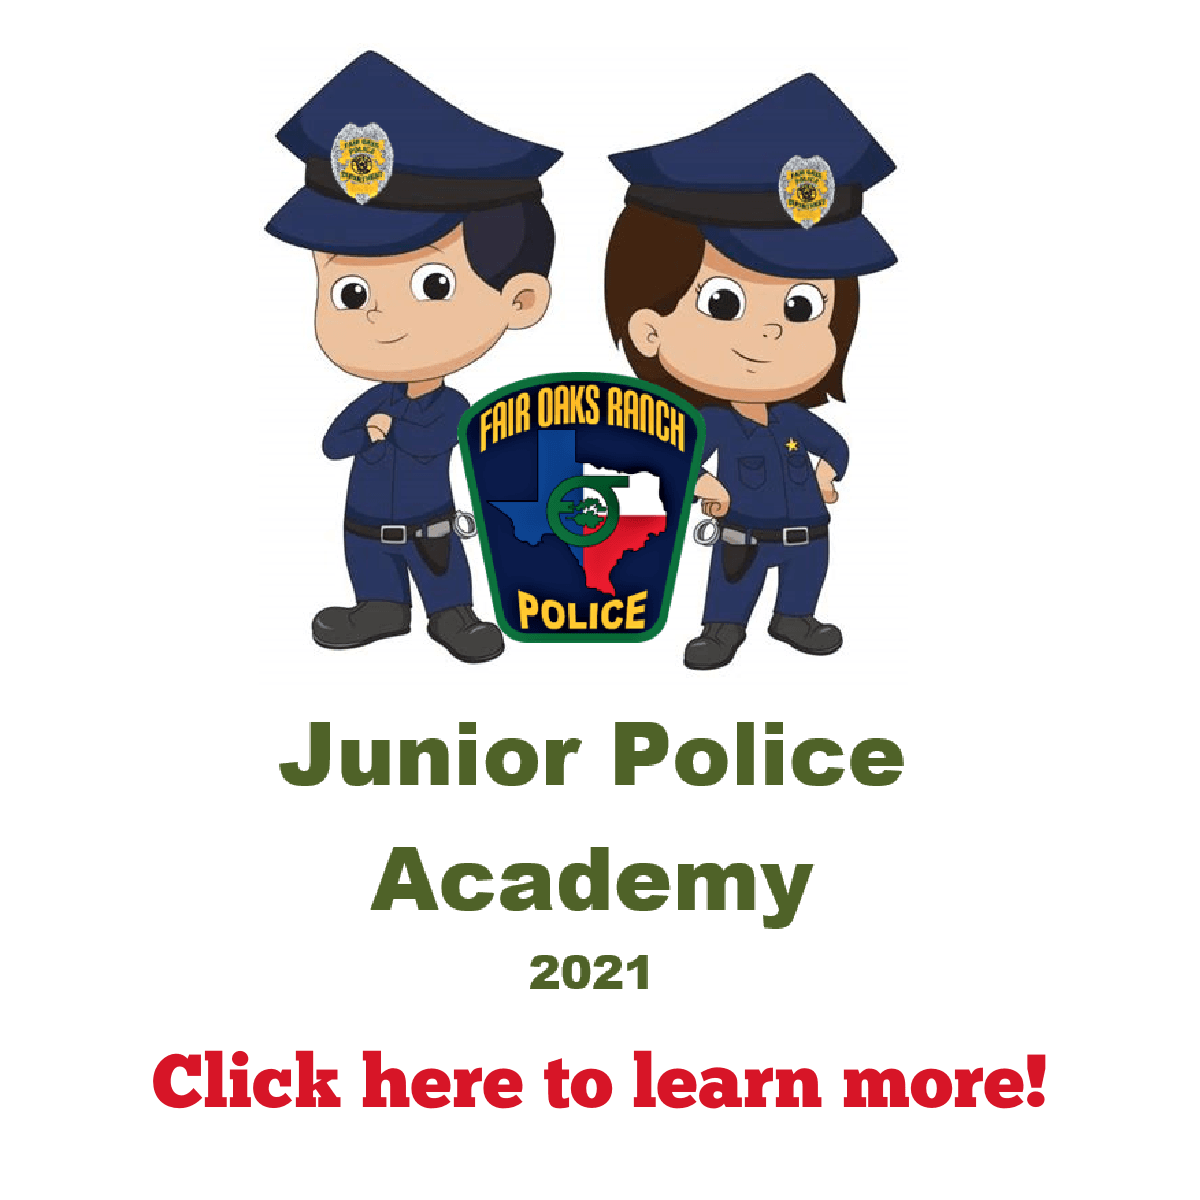 2021 Junior Police Academy